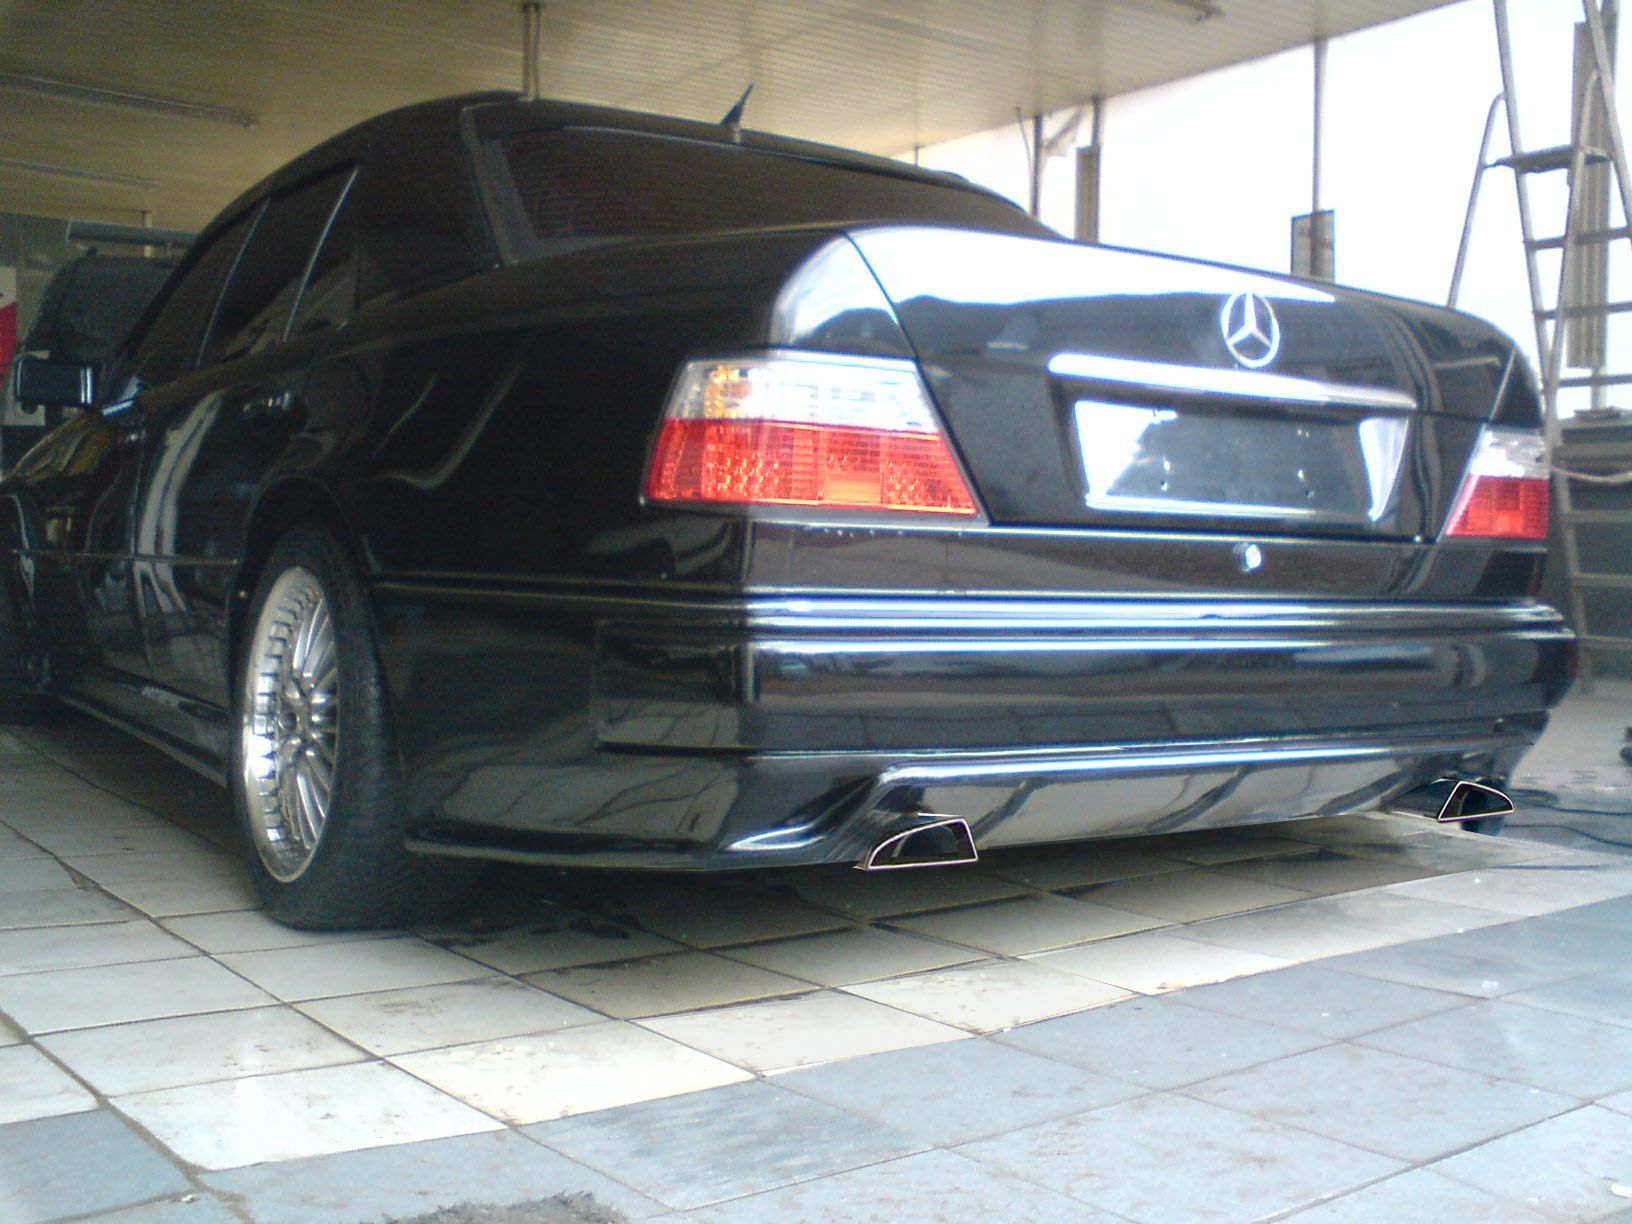 Mercedes w124 tuning google search cars motorcycles for Mercedes benz w124 tuning